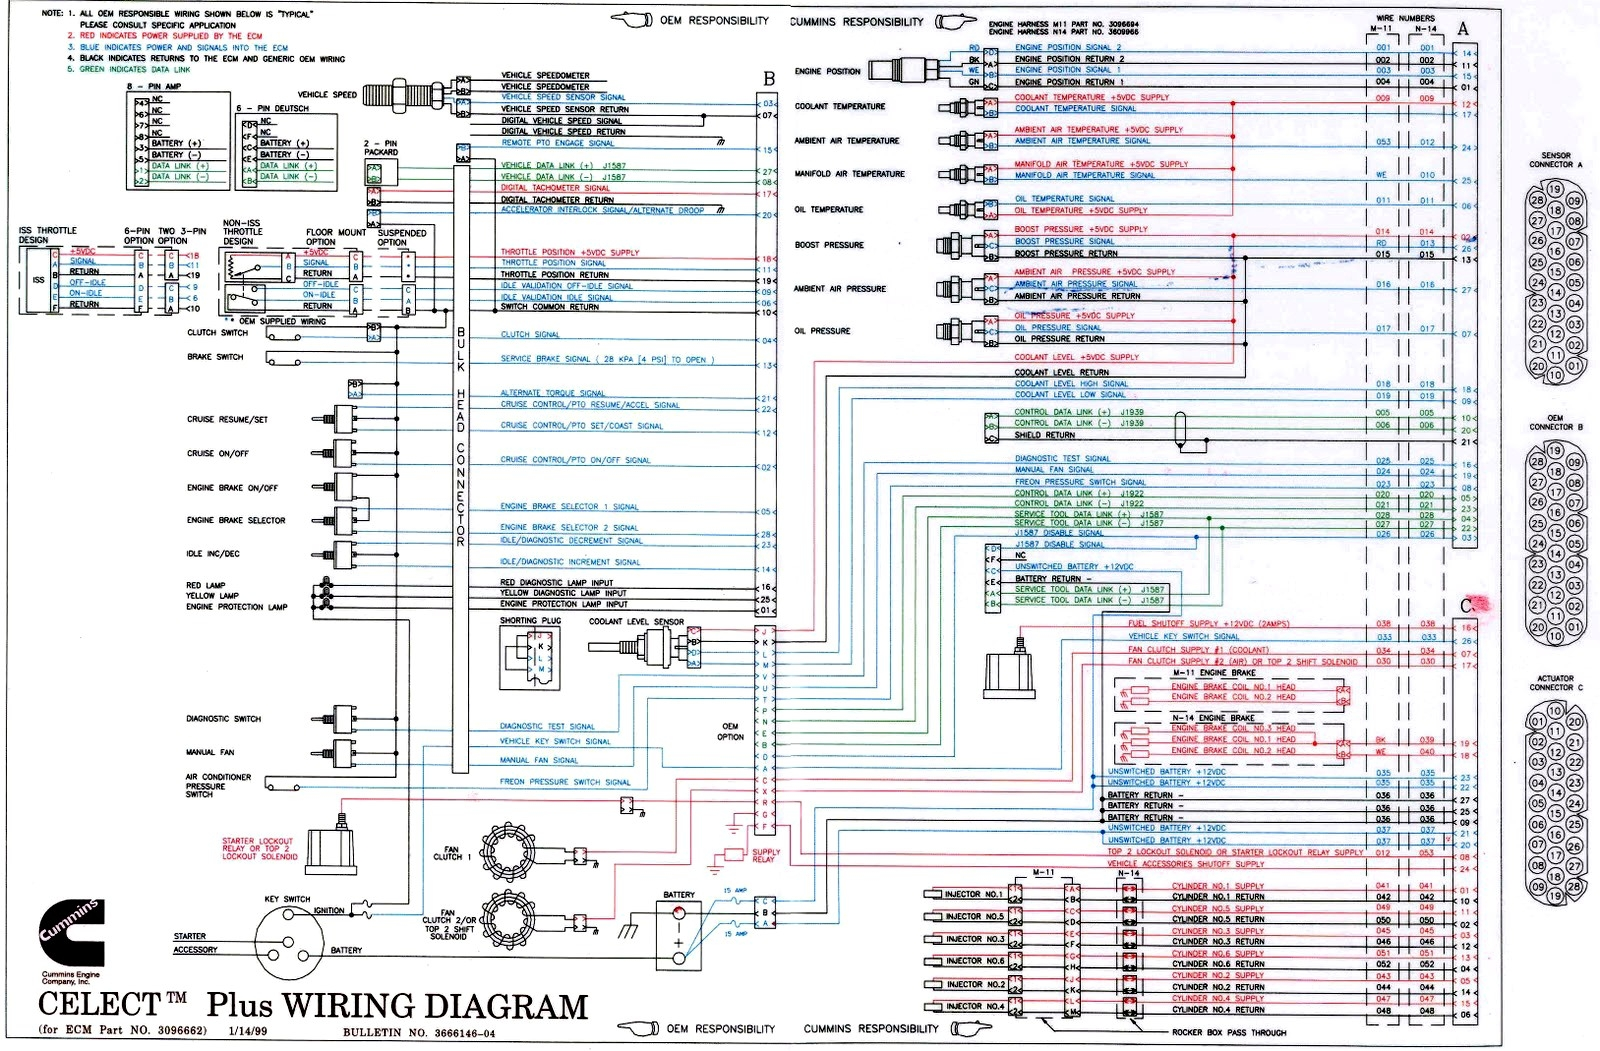 Ecm Pin Diagram Wiring Diagrams Dodge 360 N14 For Dummies U2022 Rh Crossfithartford Com